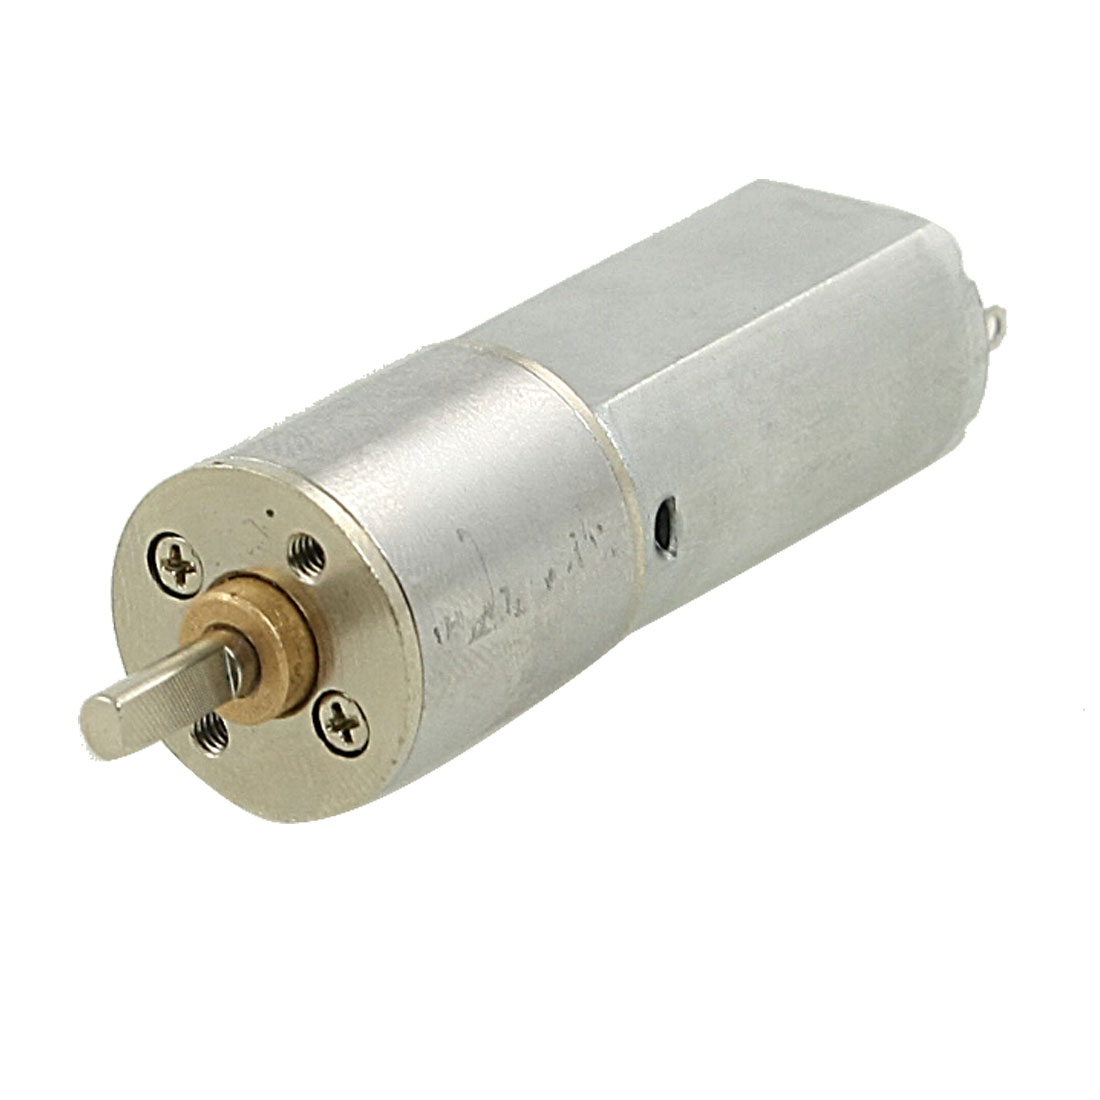 120RPM 12V 0.5A High Torque Mini Electric DC Geared Motor